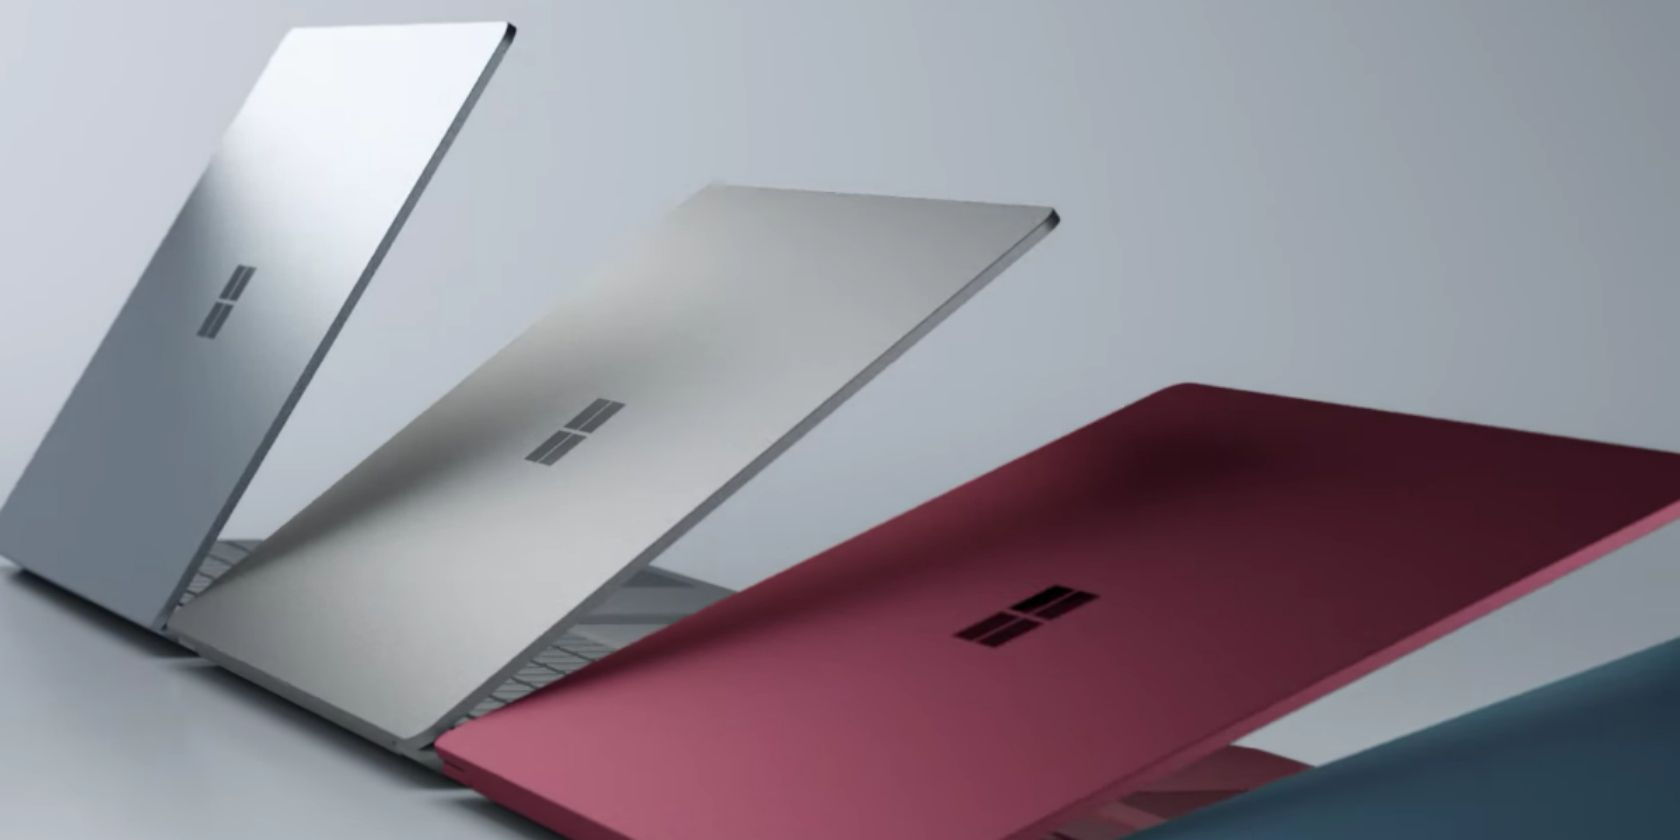 Google Pixelbook: Worse than a Microsoft Surface or MacBook Pro? microsoft surface laptop opening